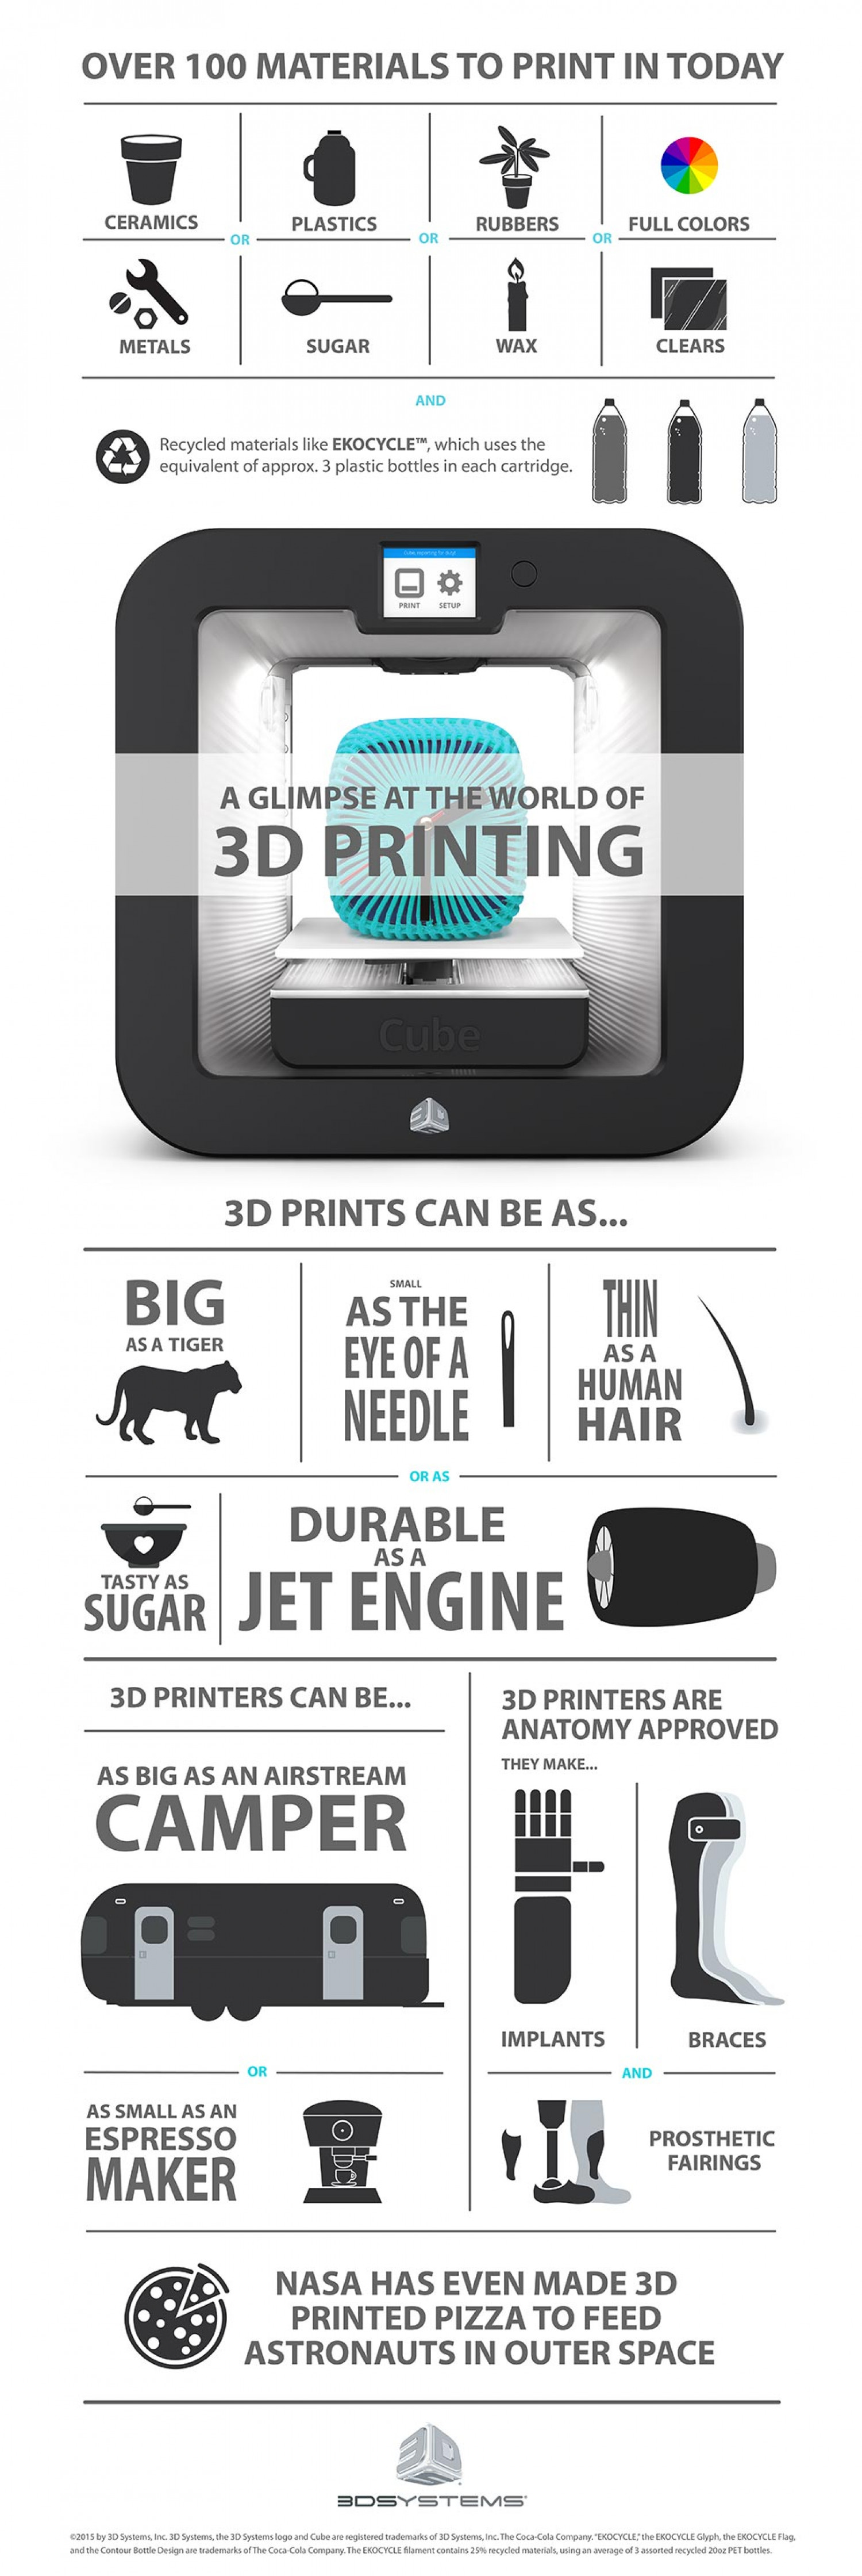 World of 3D Printing Infographic